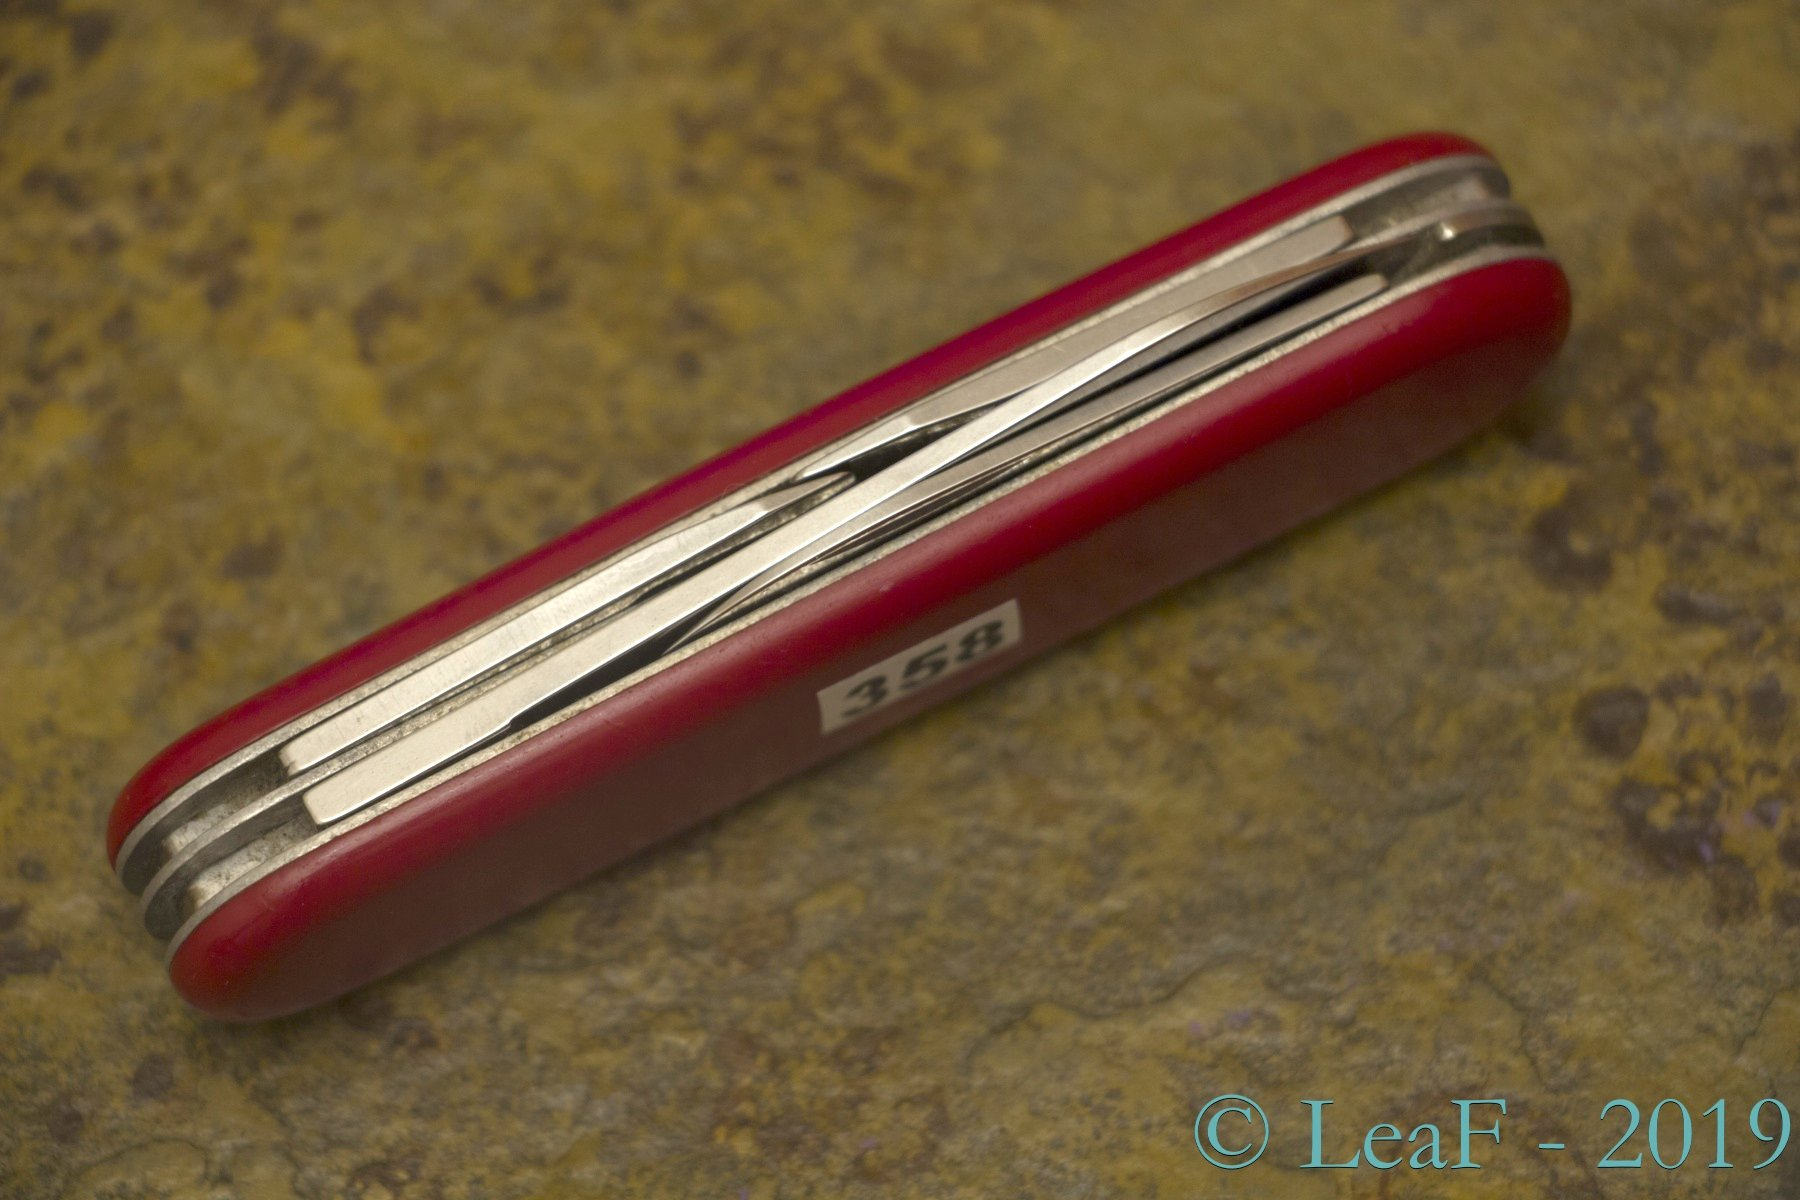 358 Scouter Recruit Leaf S Victorinox Knives Collection